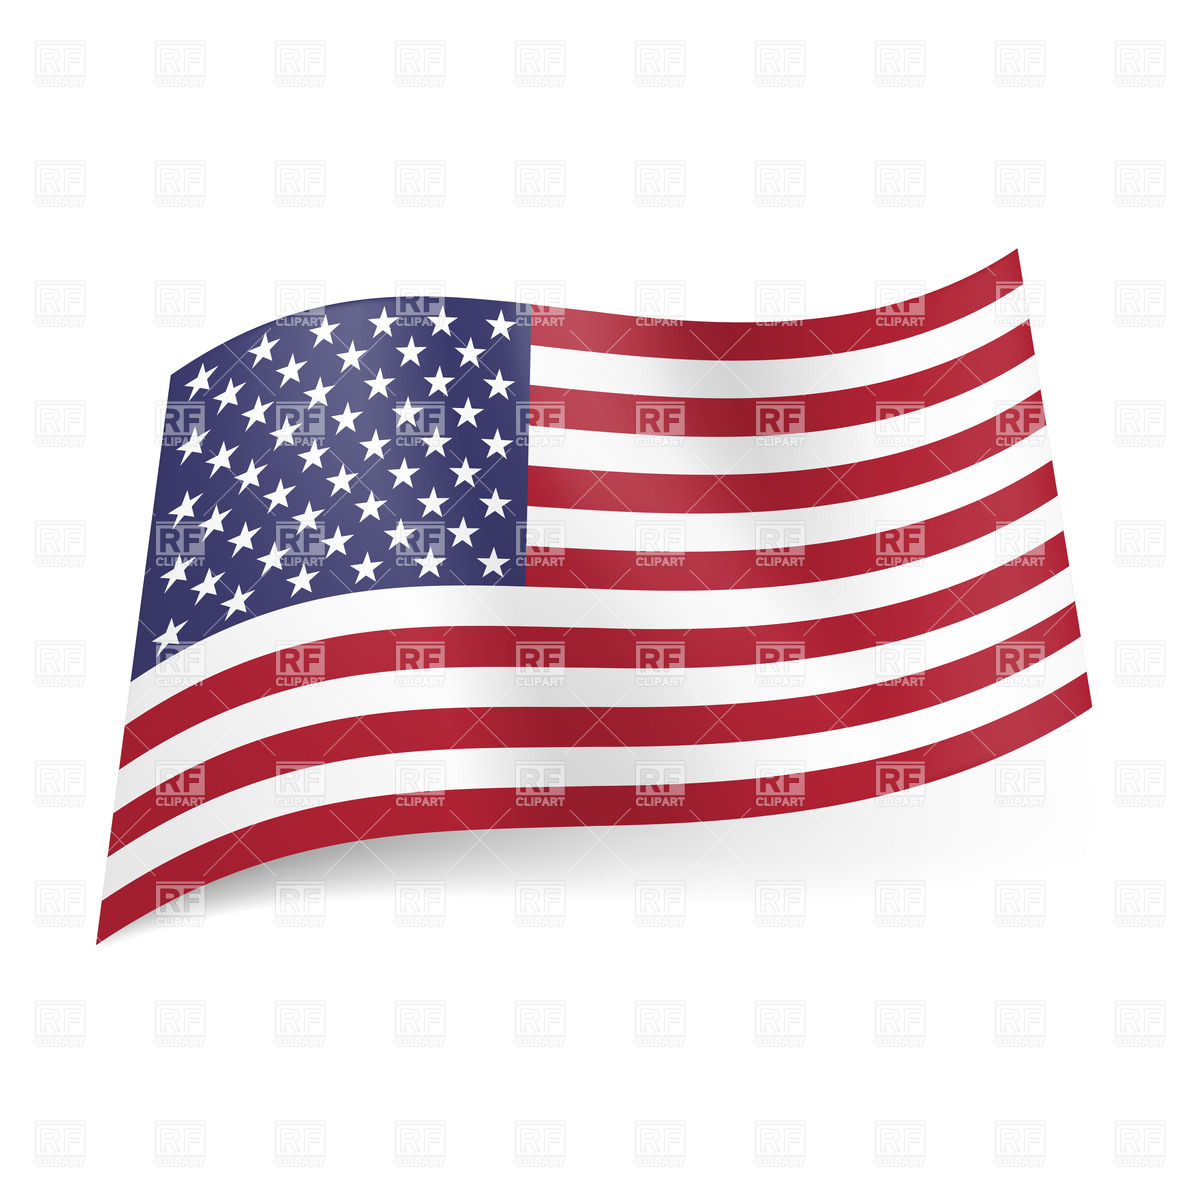 national-flag-of-united-states-of-america-Download-Royalty-free-Vector-File-EPS-42075.jpg